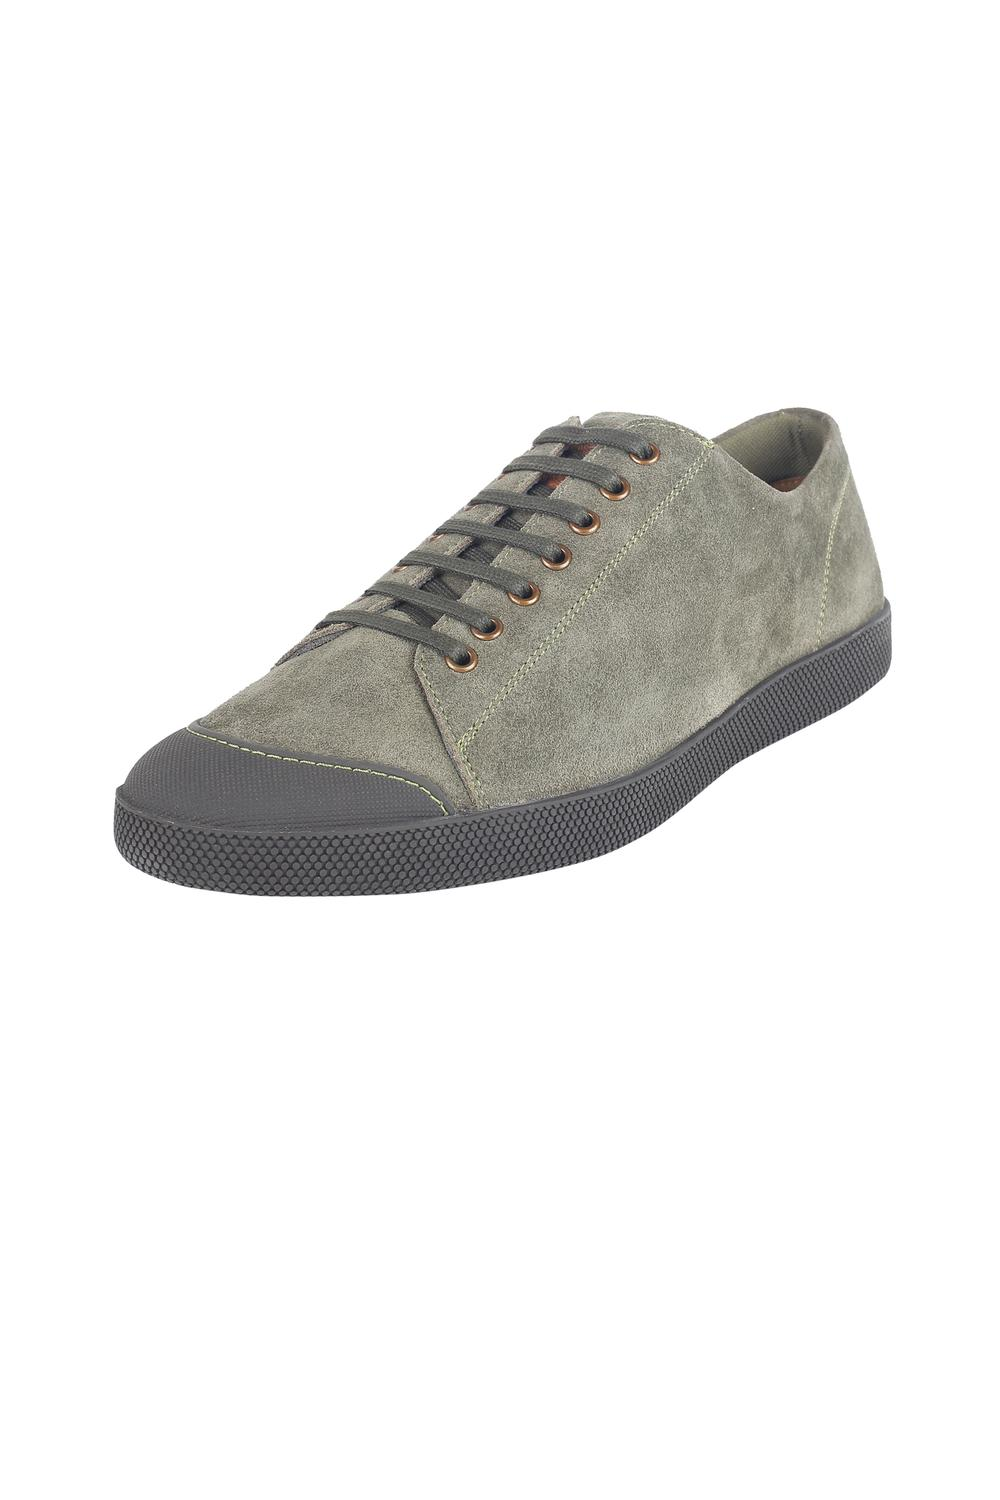 Allen Solly Green Casual Shoes